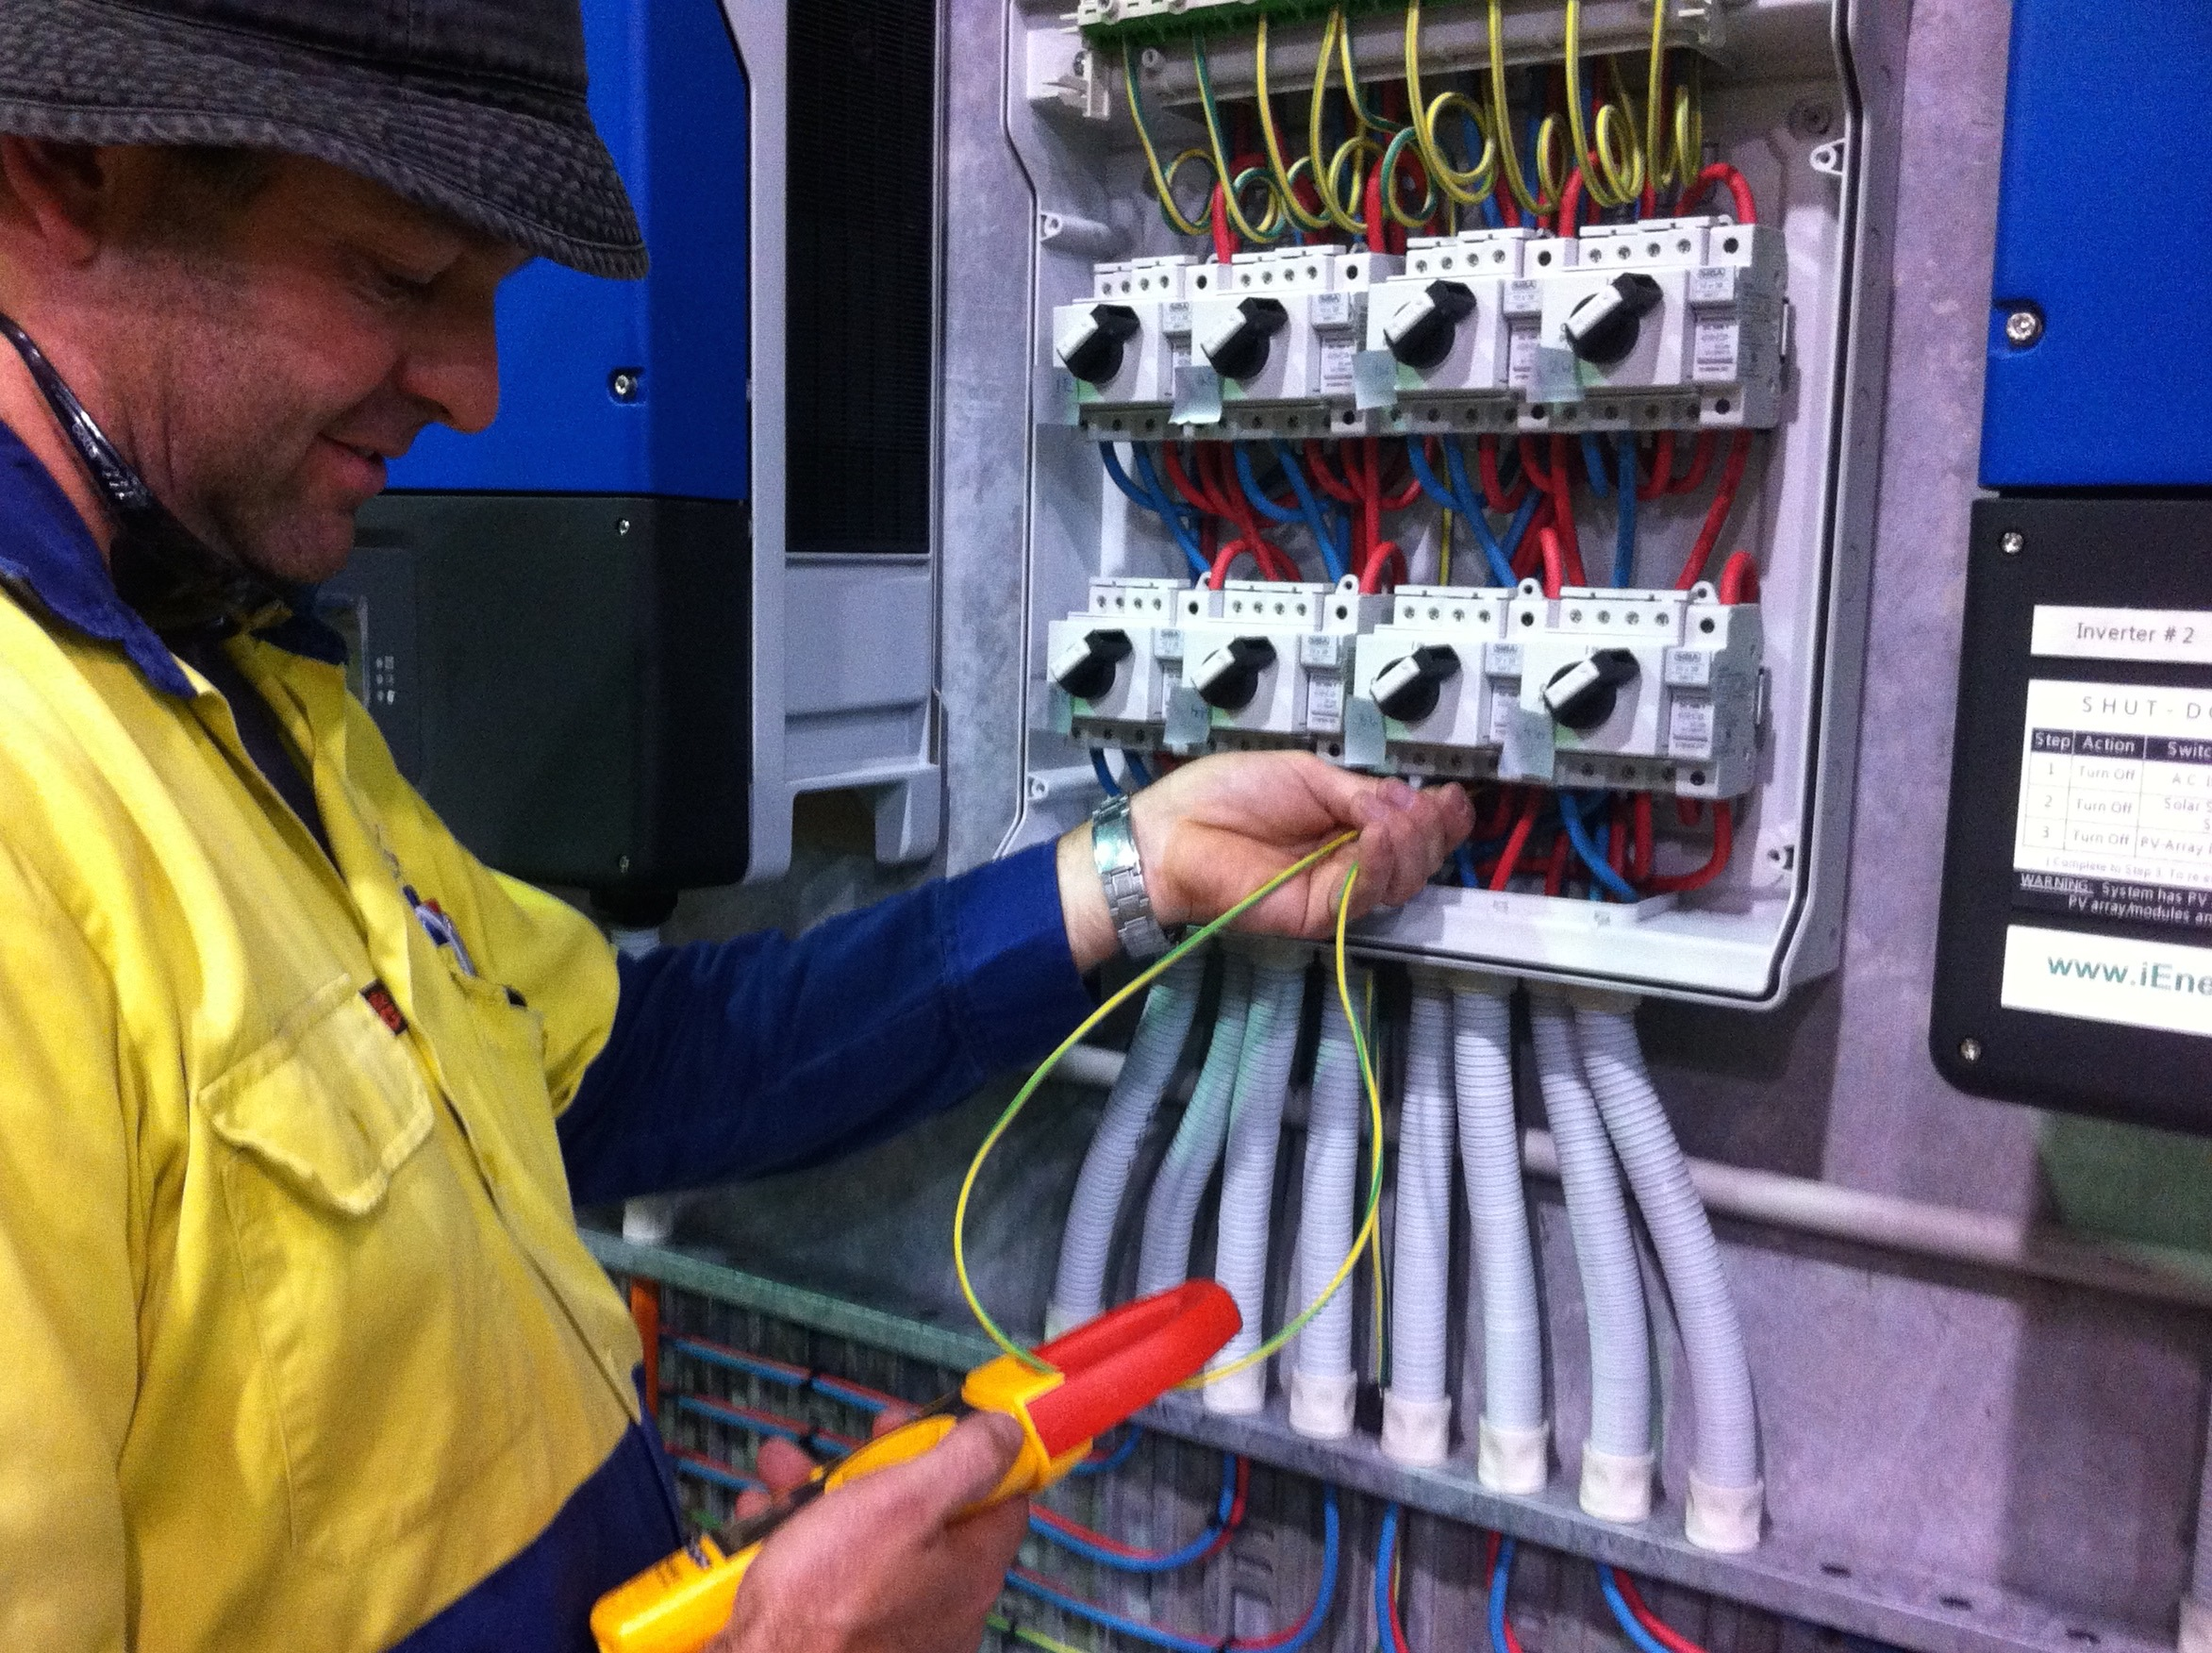 Mark Deutschbein carrying out short-circuit tests at Deks Industries.